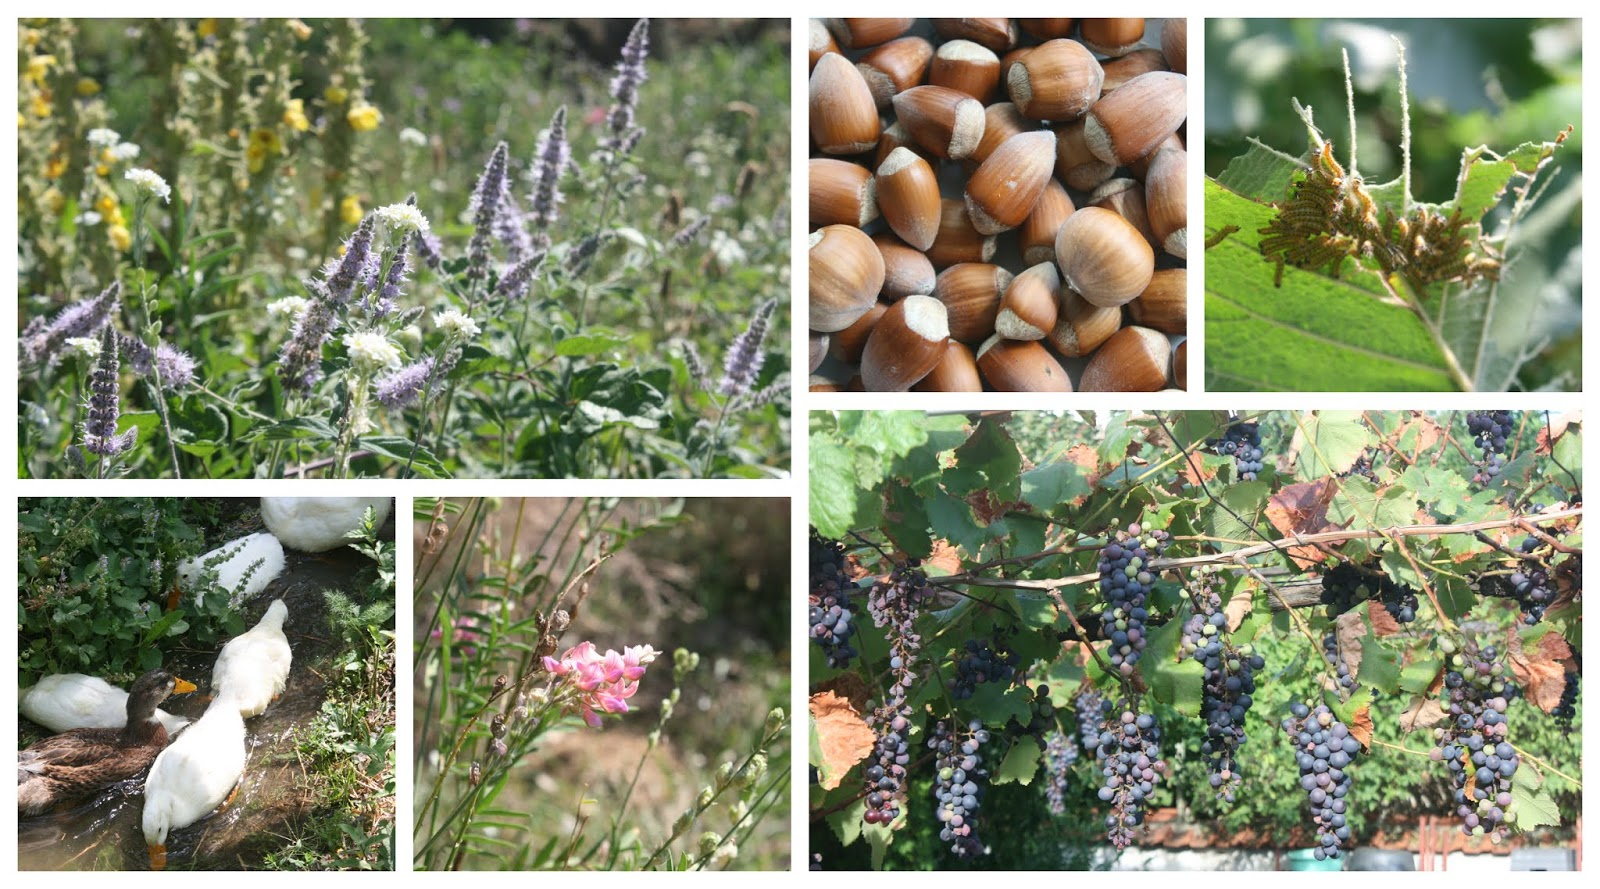 week in the gardens and as the summer draws to a close the harvest season is upon us with plenty to pick and process as we wind down into the autumn